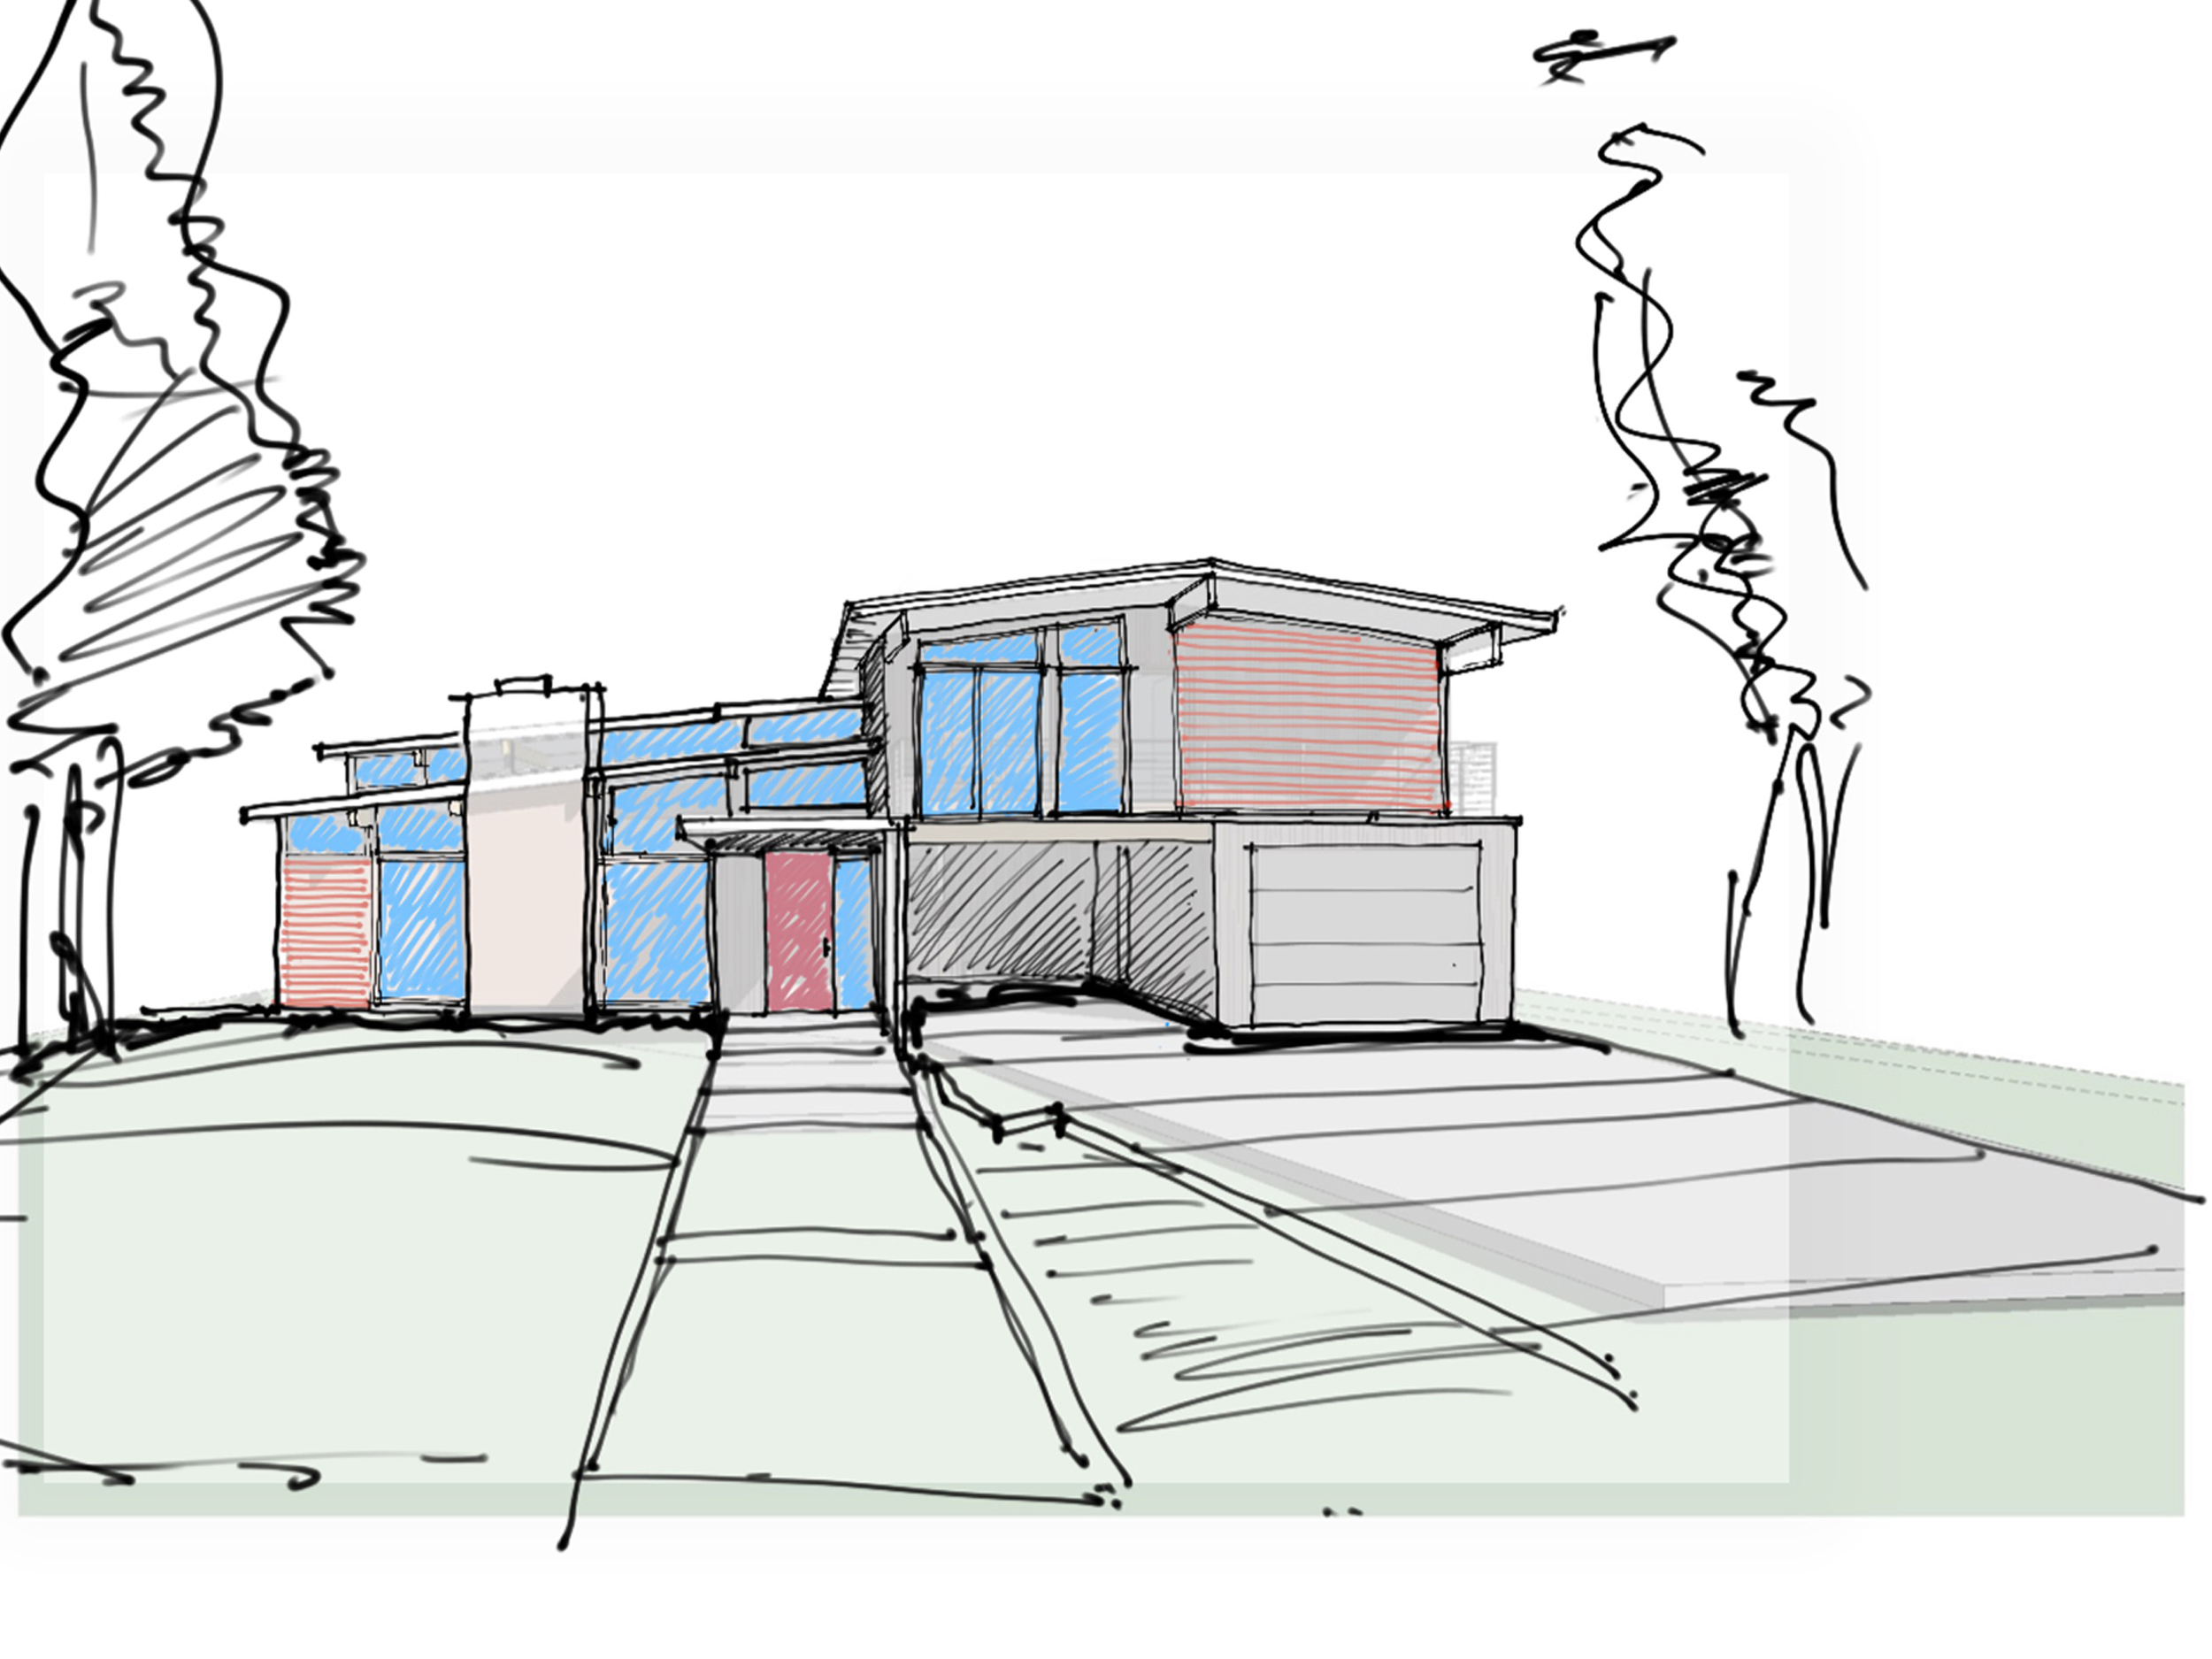 Grant - Perspective sketche - gable roof.jpg